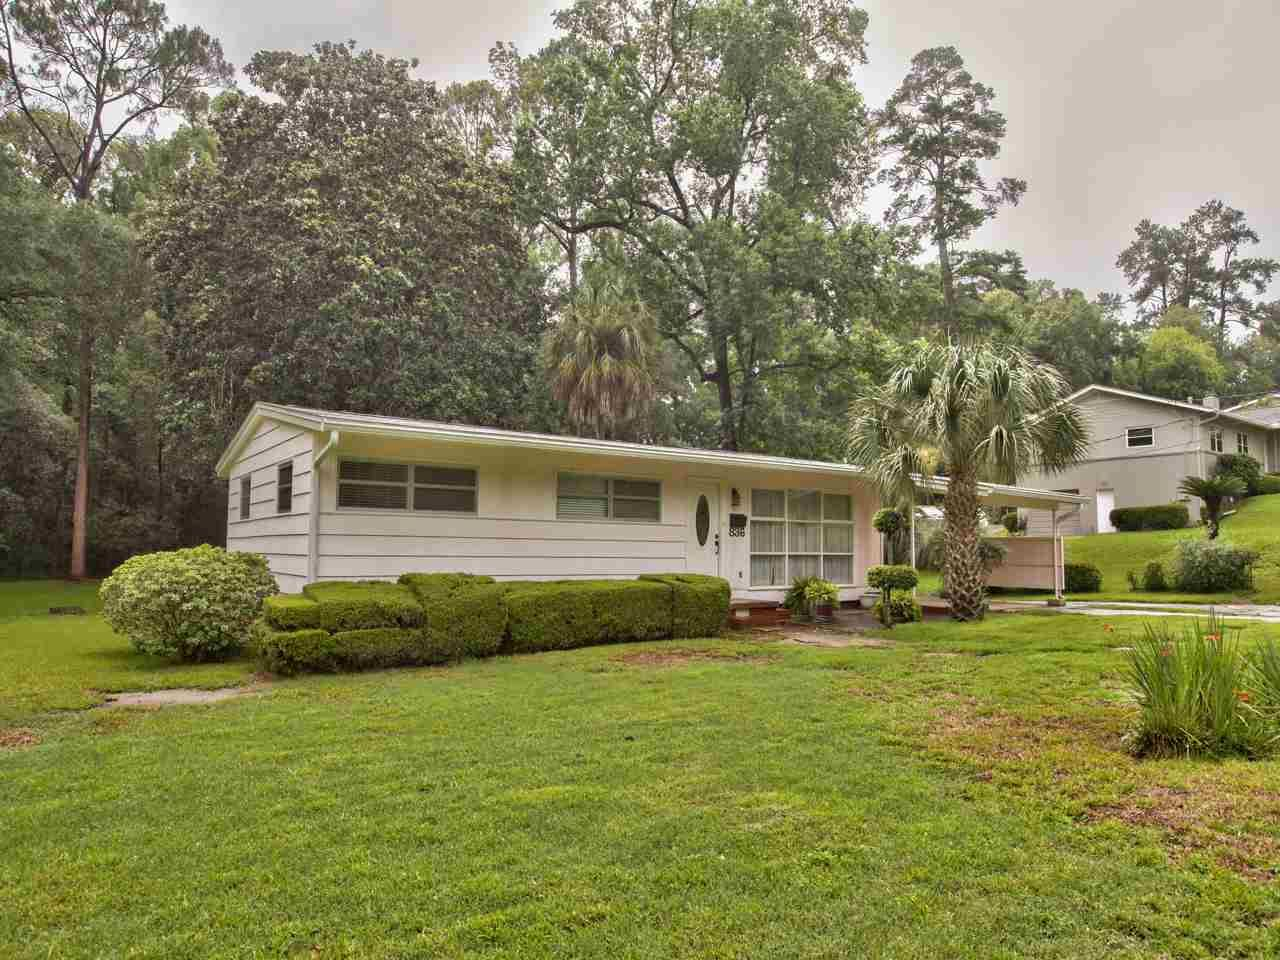 Photo of 836 BROOKWOOD DRIVE, TALLAHASSEE, FL 32308 (MLS # 320029)